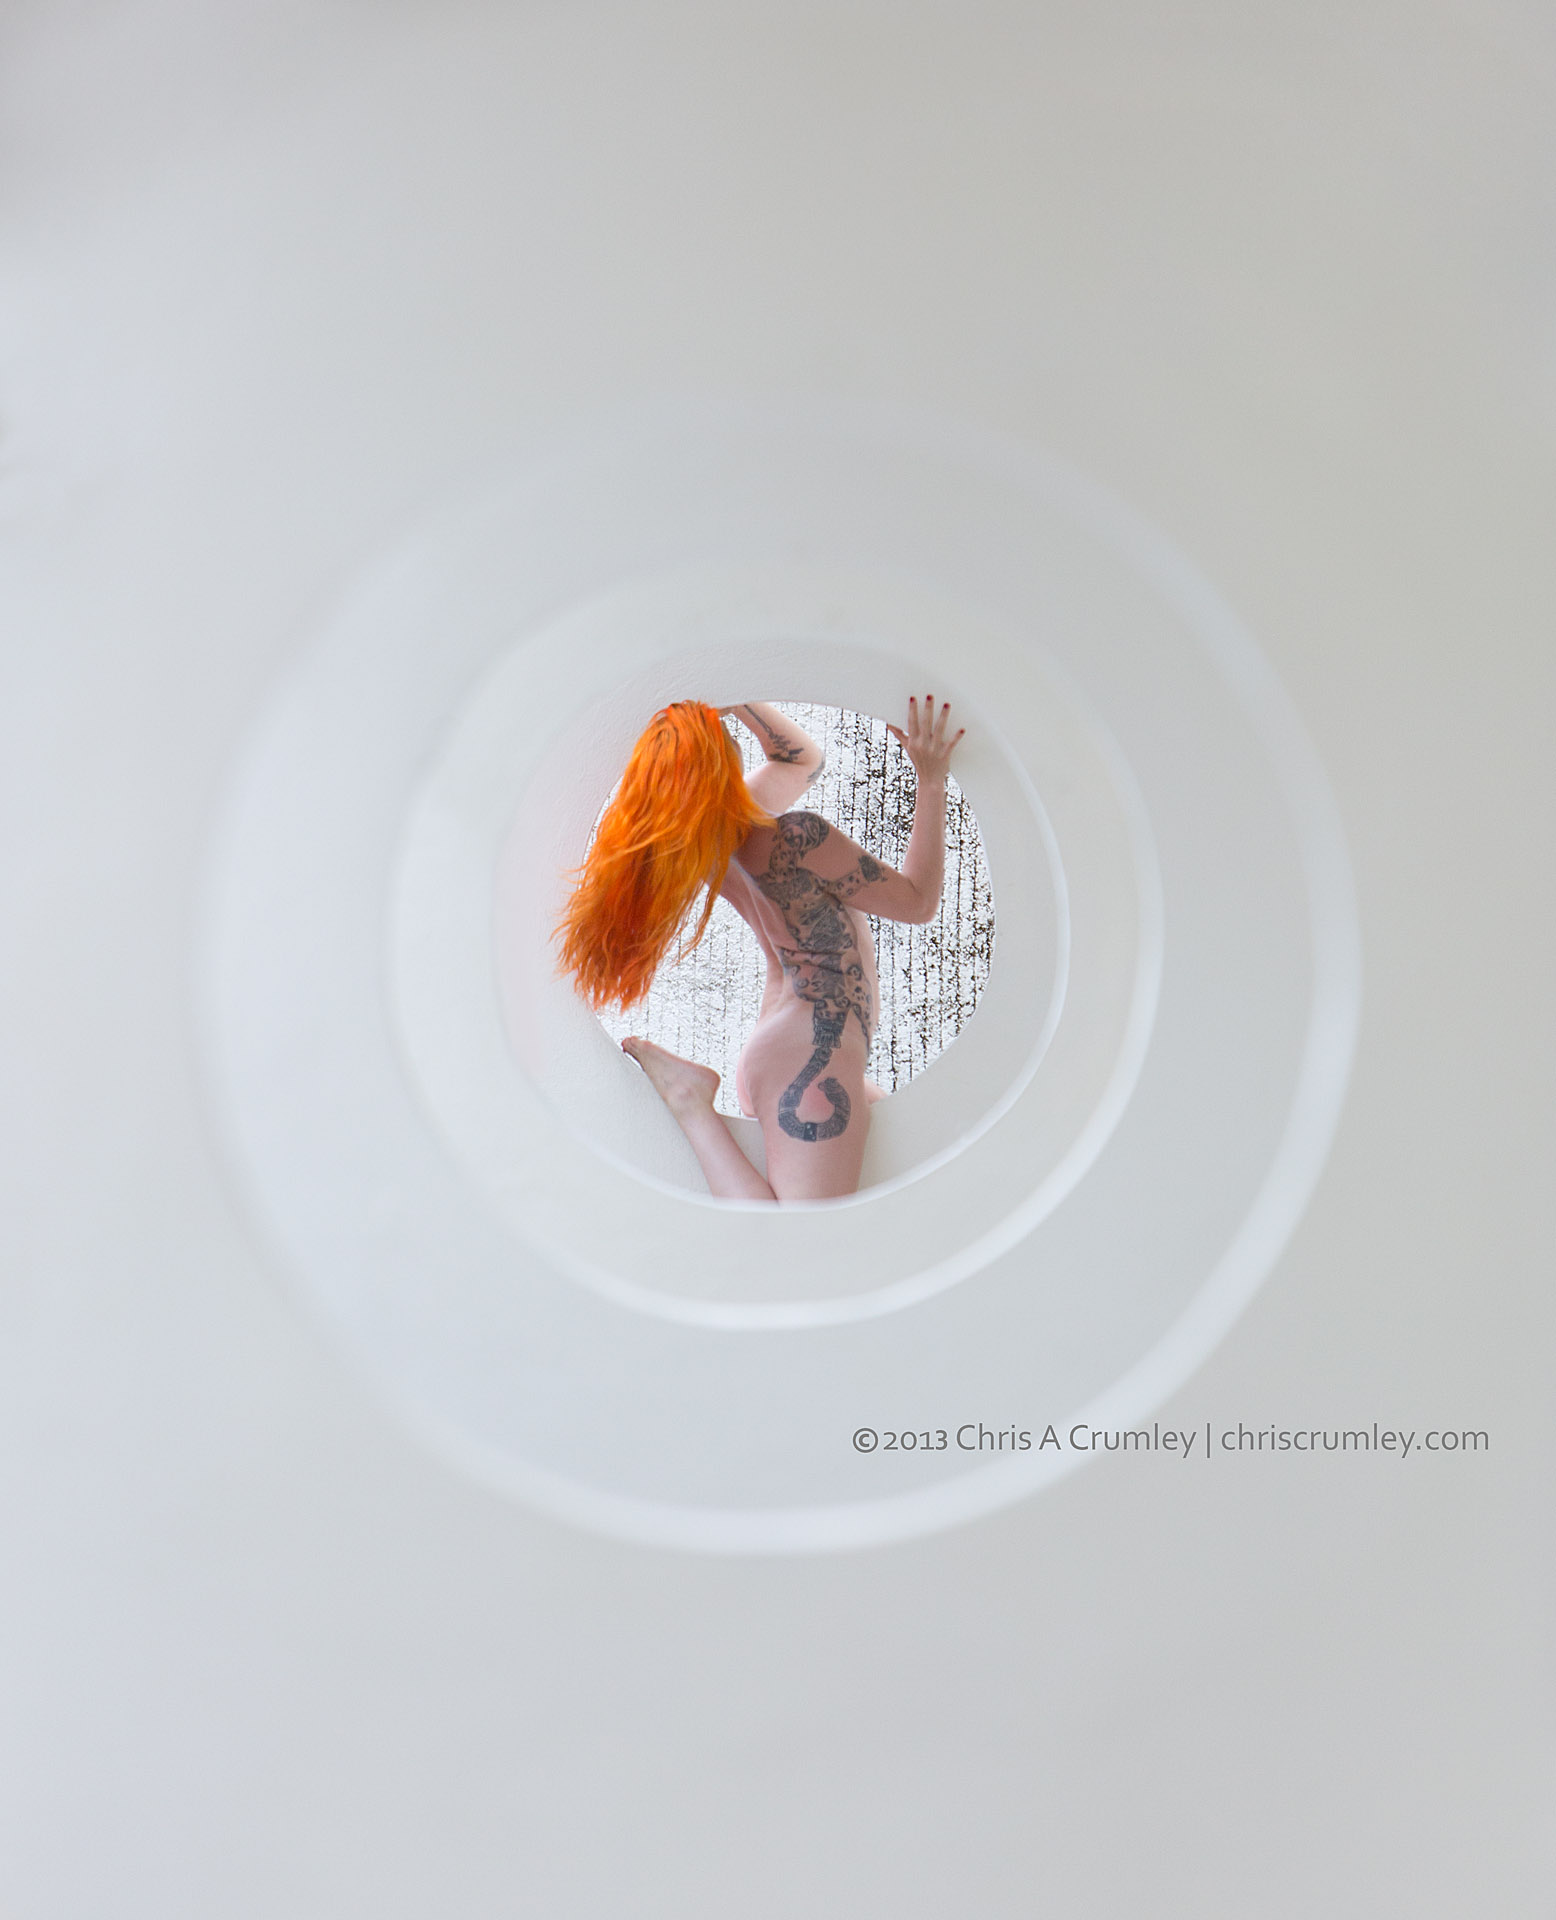 White Walls of Circles, Red Hair and Tattoo